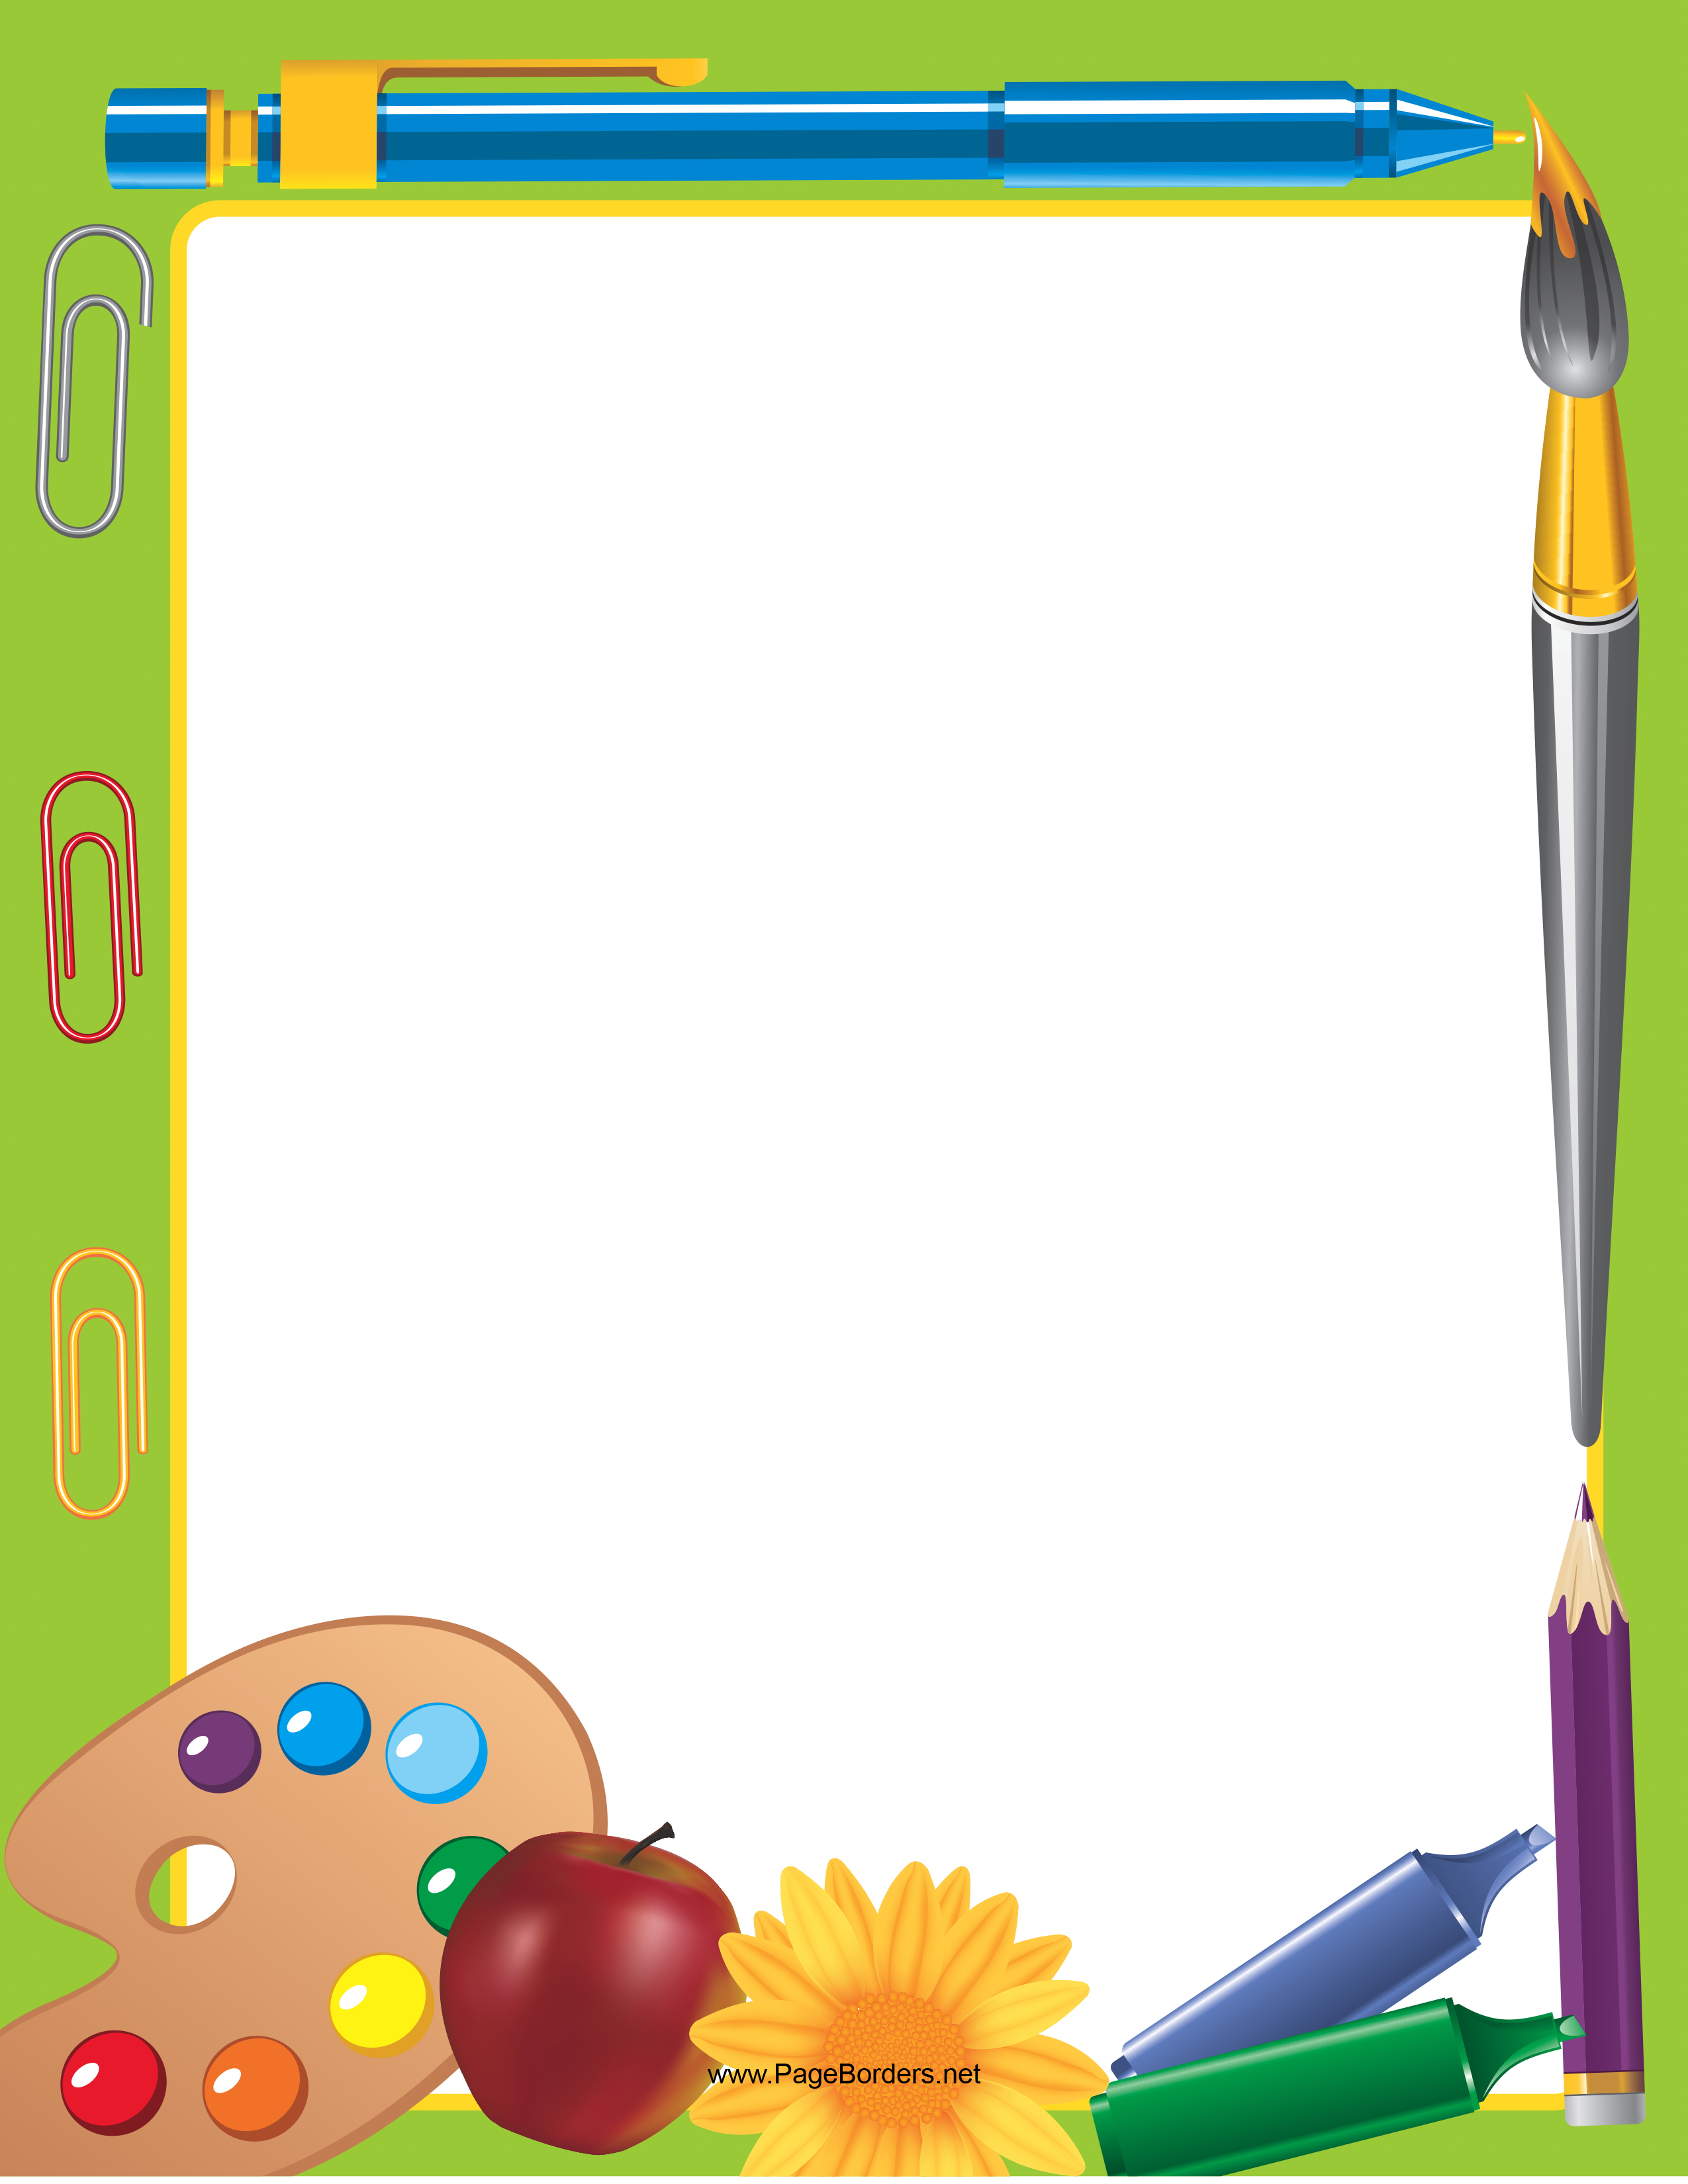 celebrate-picture-books-picture-book-review-mechanical-pencil-page